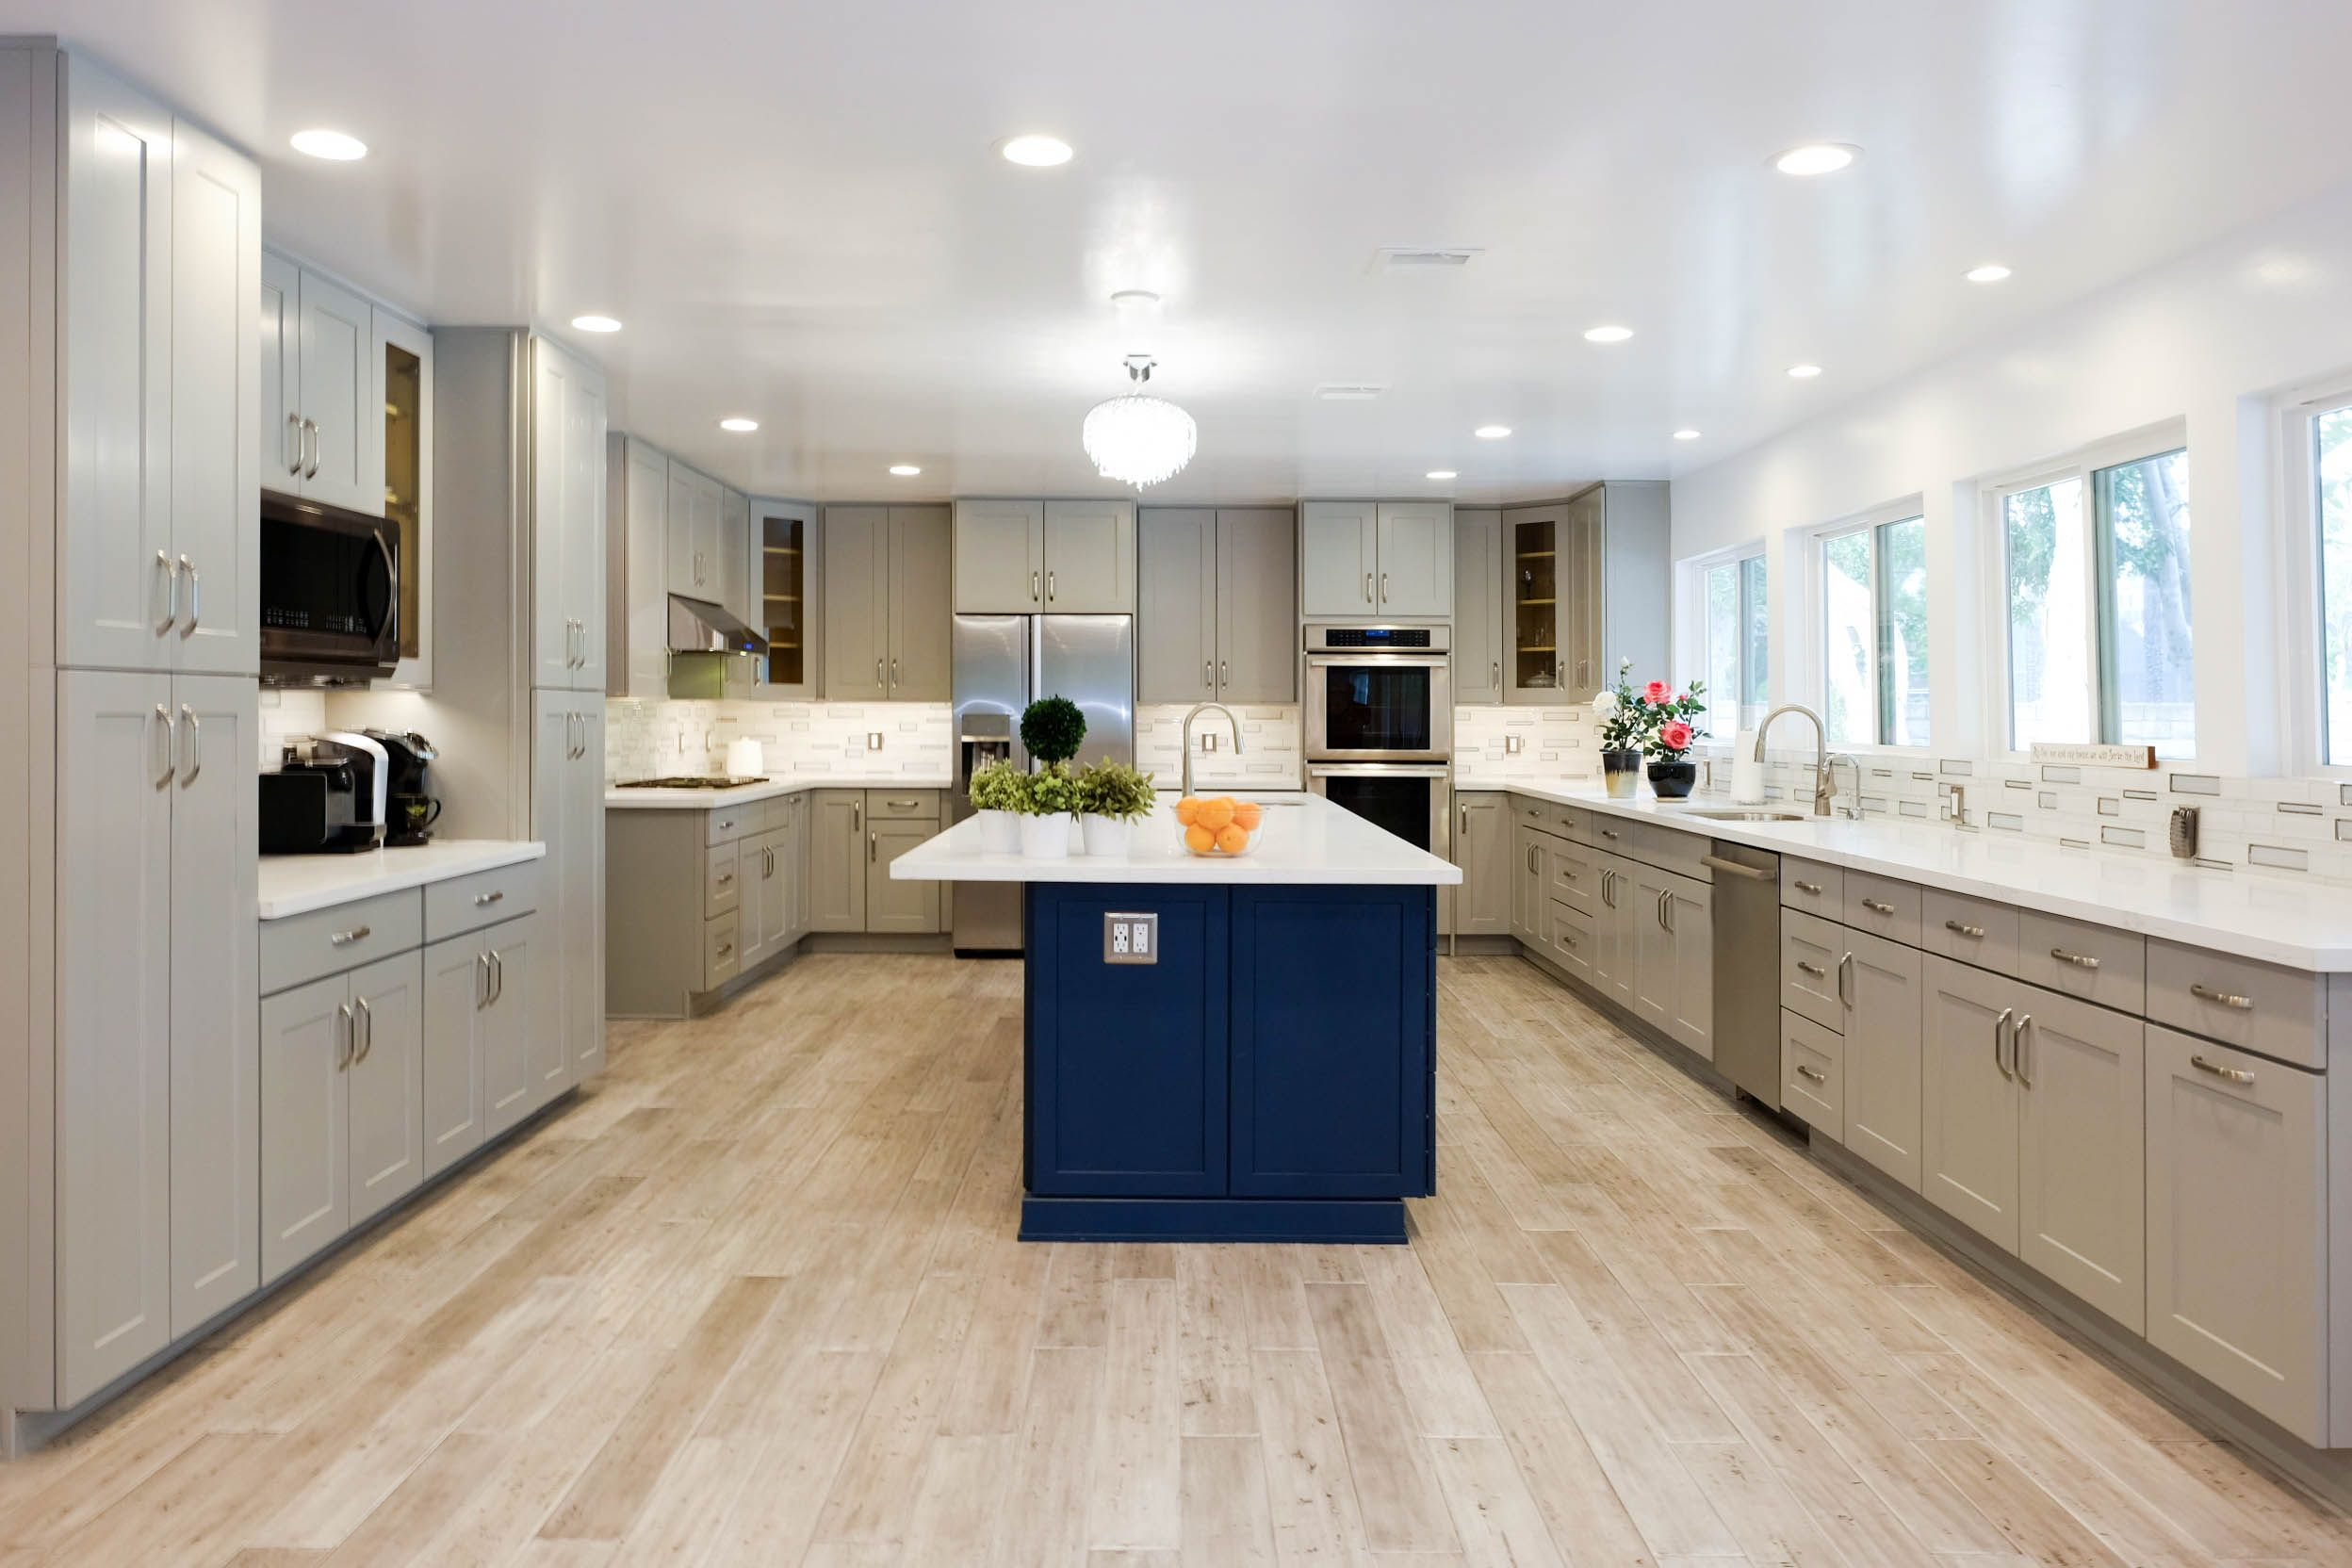 Large Expansive Kitchen With Grey Shaker Cabinets In Chatsworth Ca Custom Blue Island Wa Kitchen Cabinet Manufacturers Rta Kitchen Cabinets Kitchen And Bath